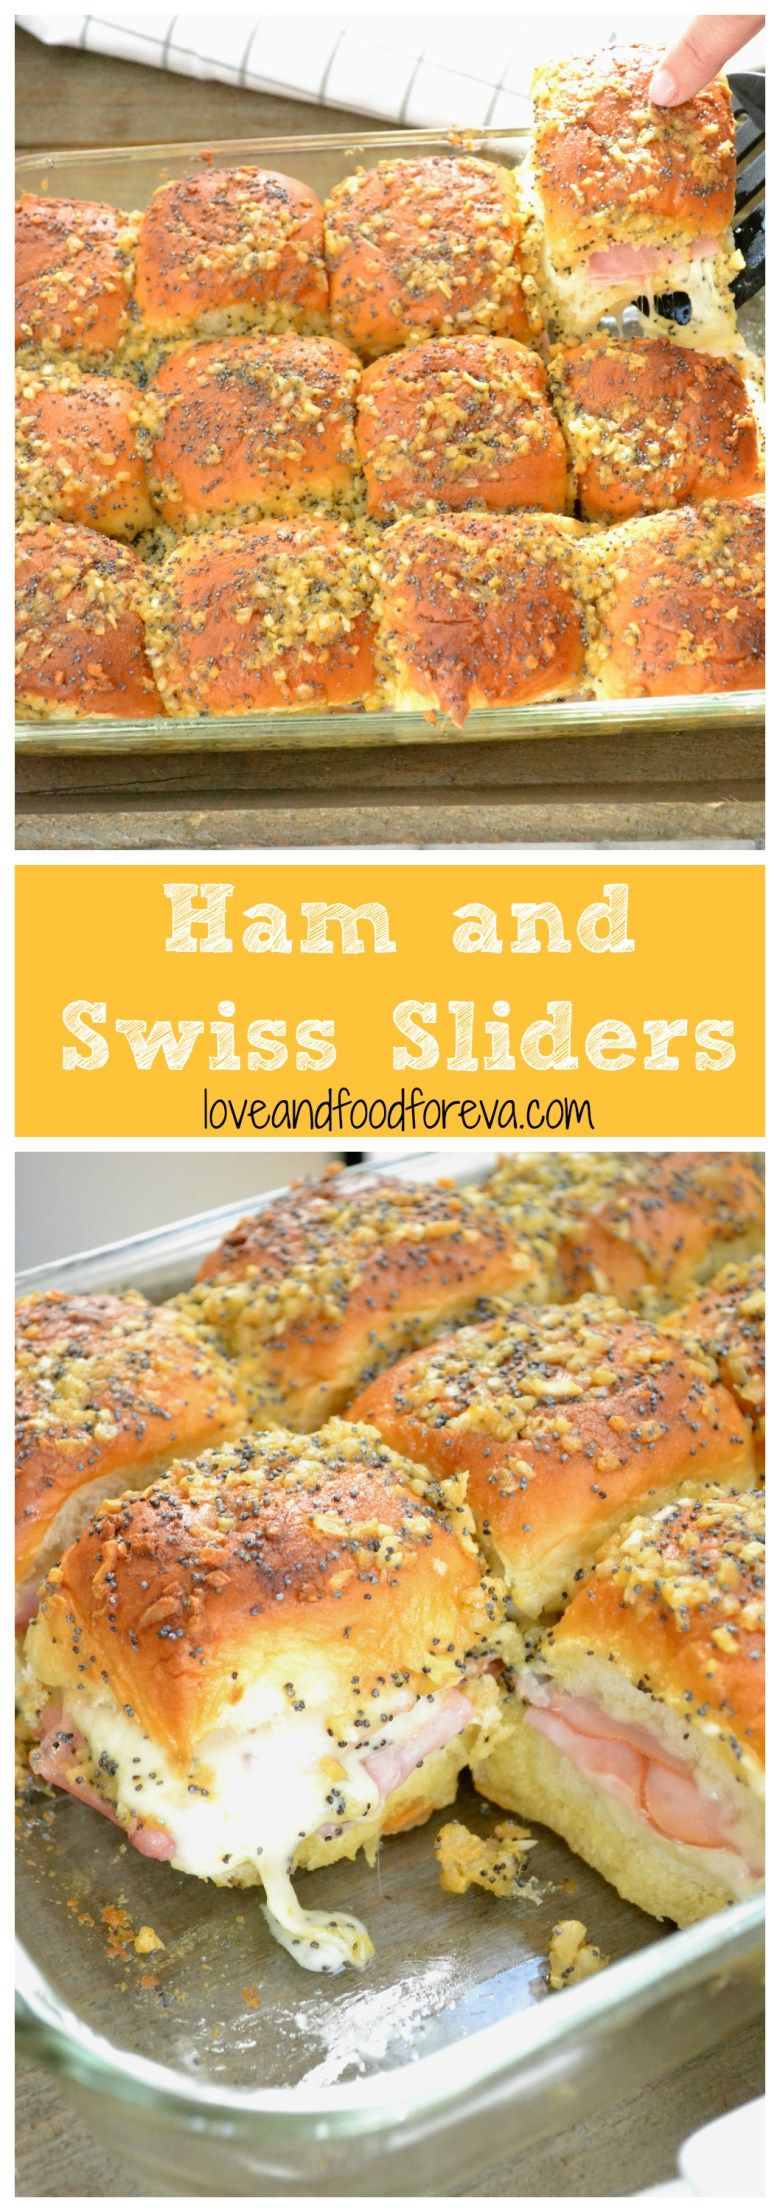 Ham and Swiss Sliders: these are a must-have at your game day party! #footballpartyfood